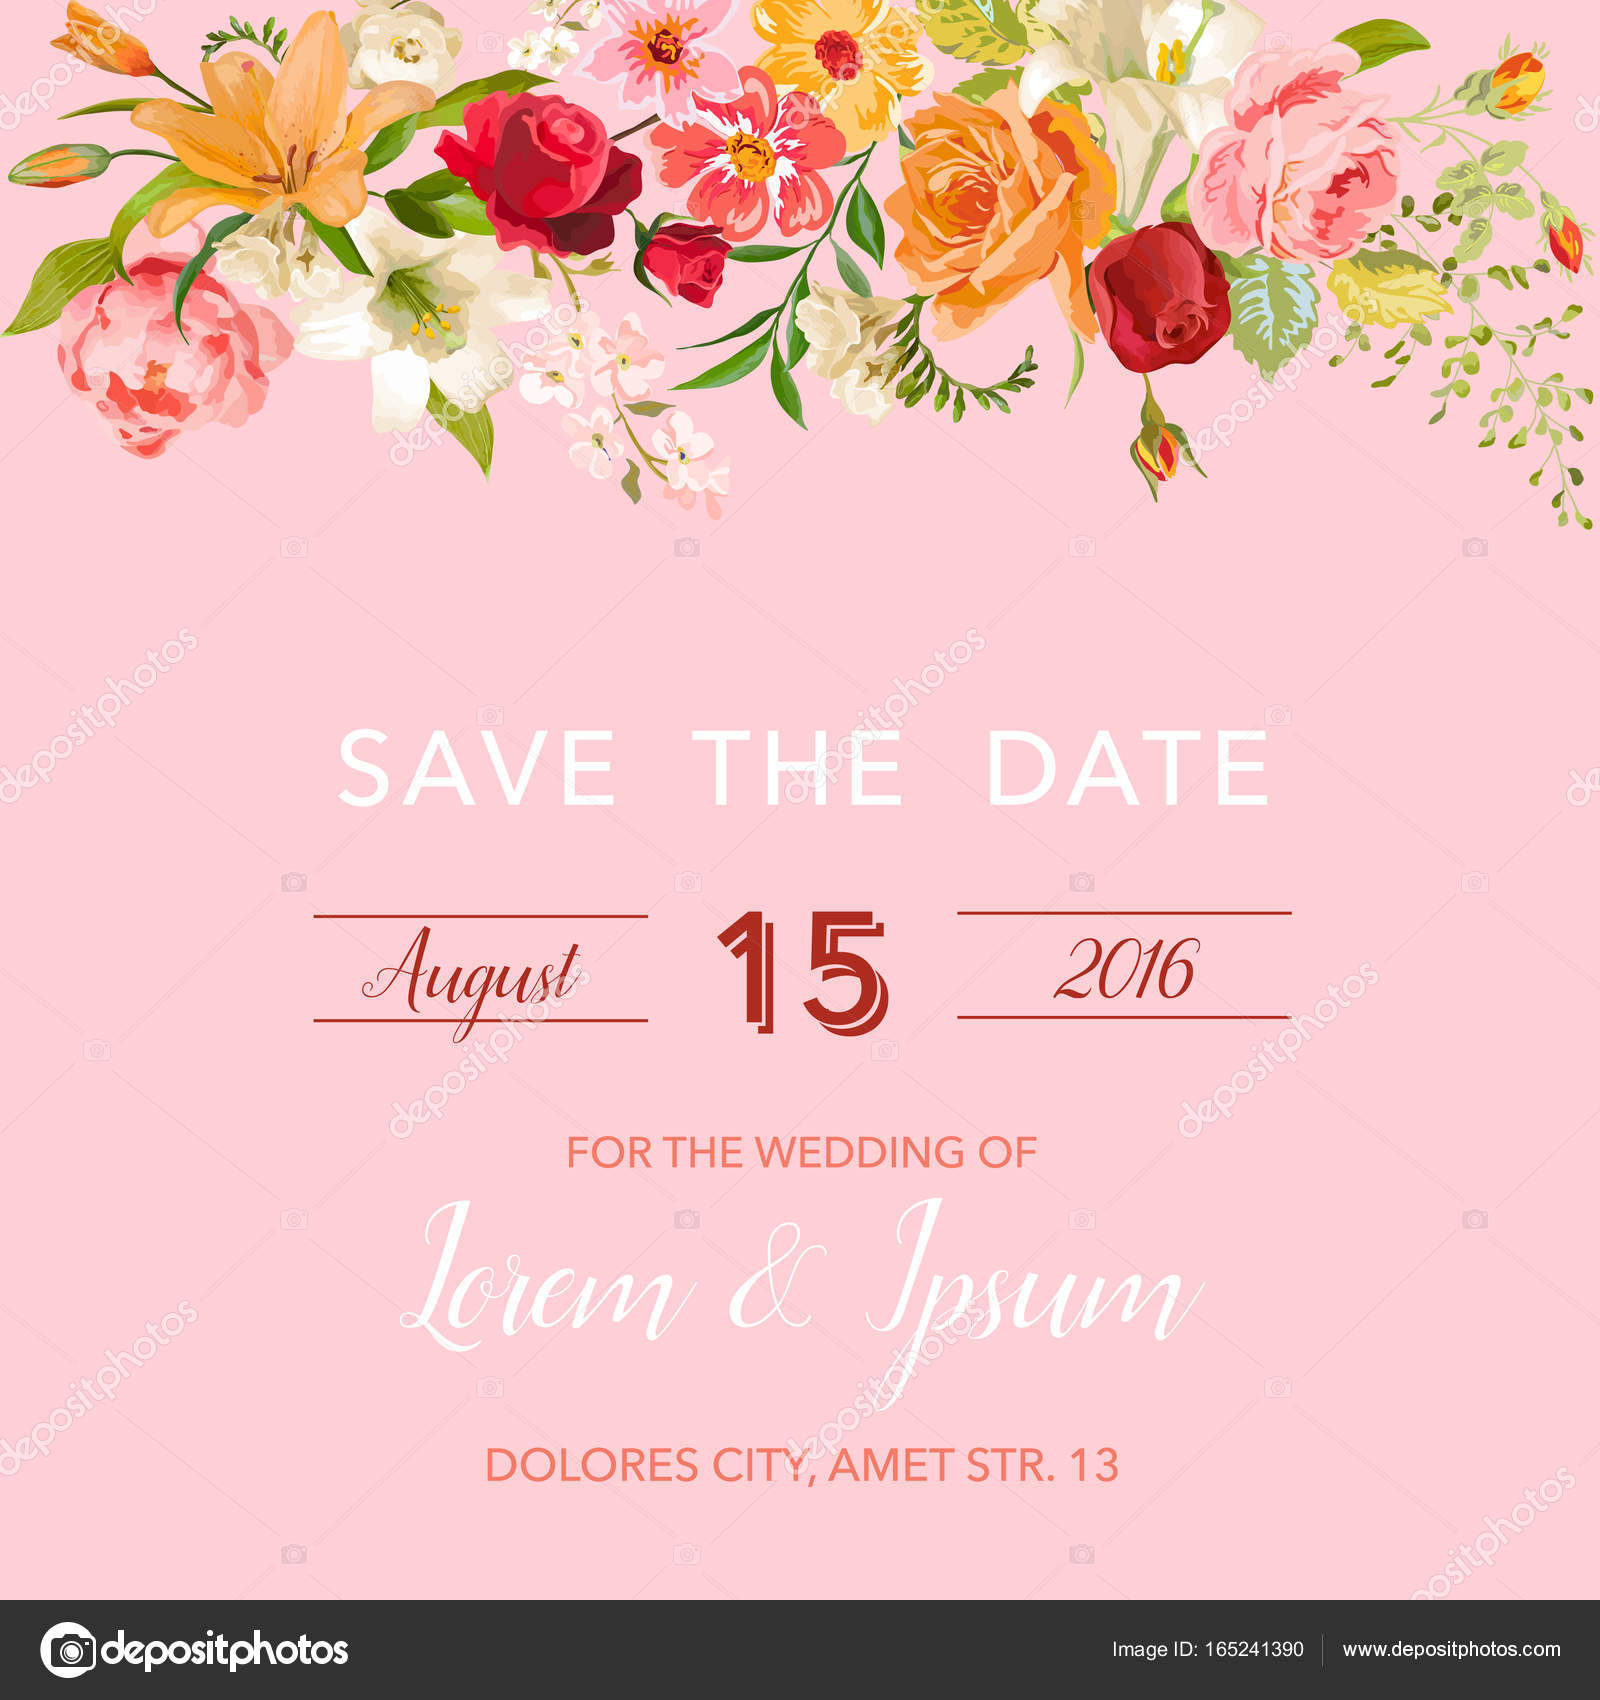 Save The Date Wedding Floral Ornament Wedding Floral: Wedding Invitation Template. Floral Save The Date Card